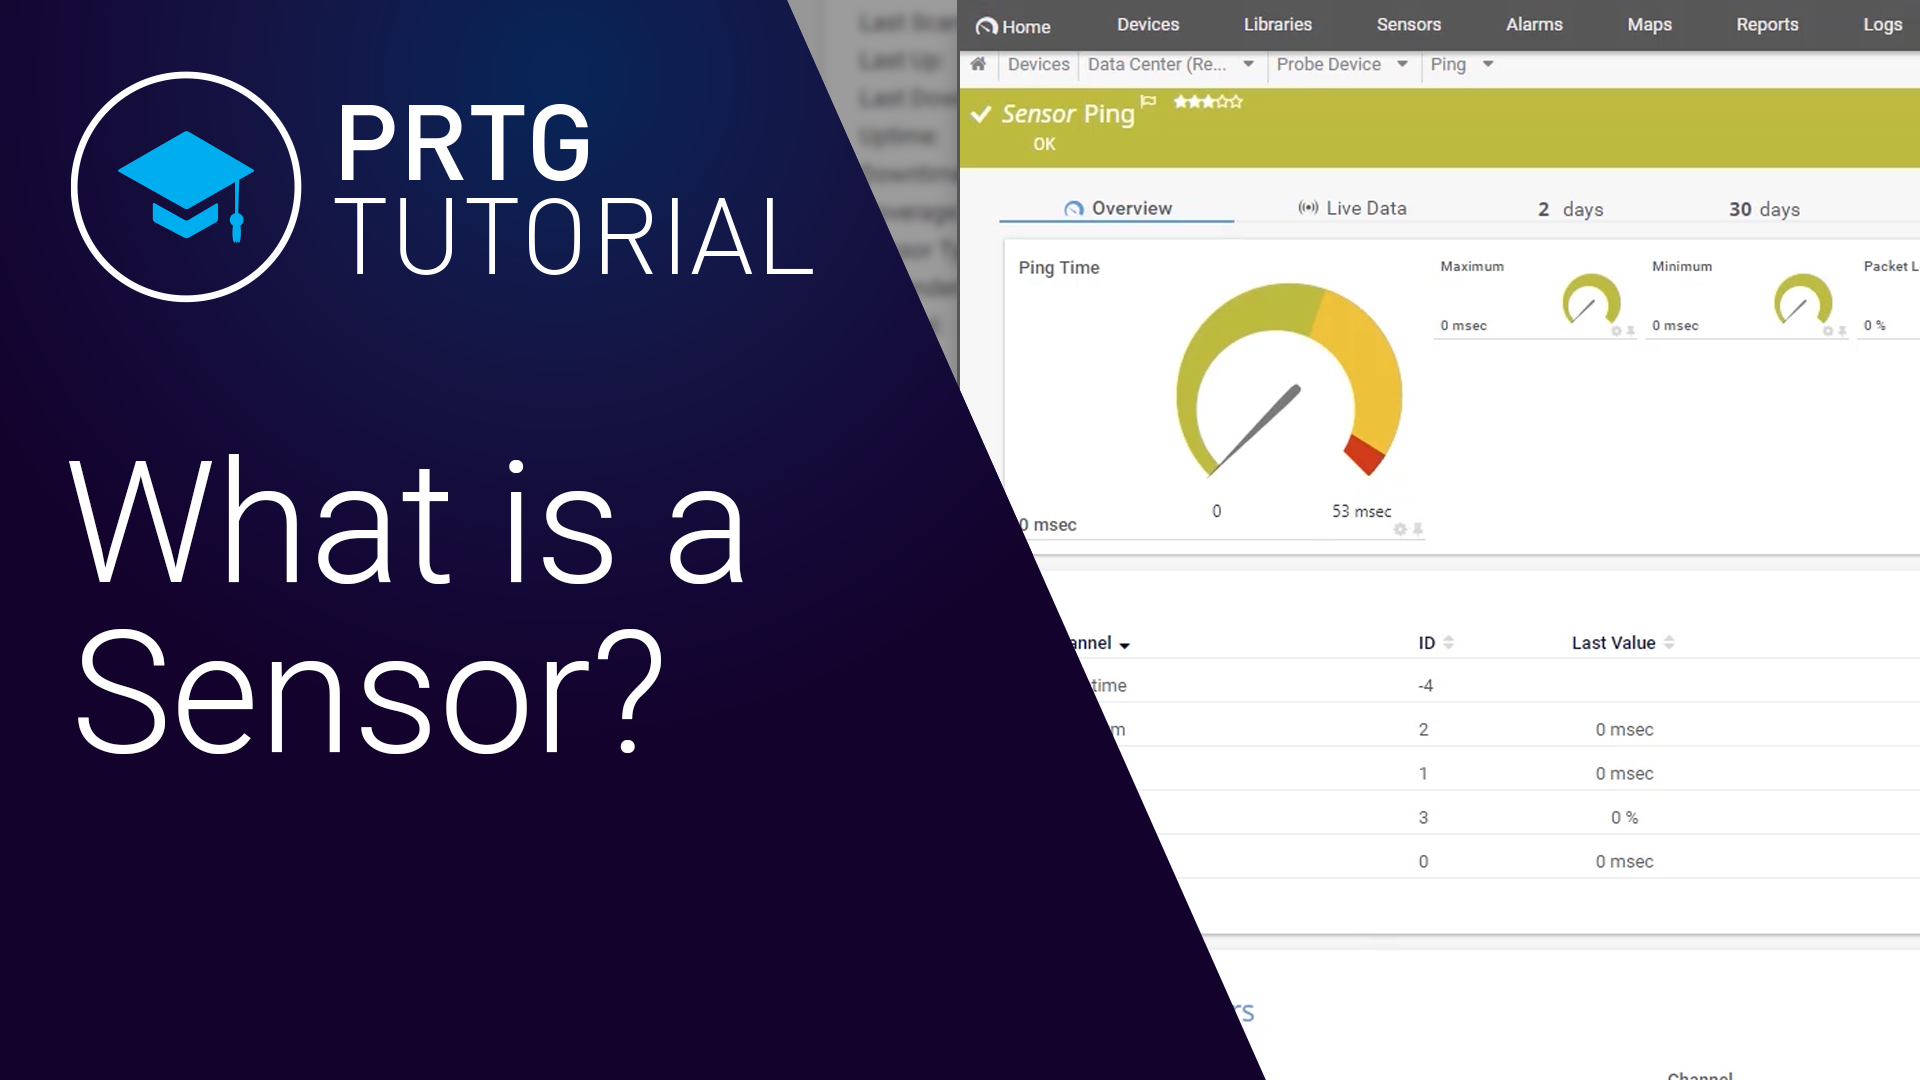 Video: PRTG Network Monitor - What is a sensor? (Videos, Sensors)